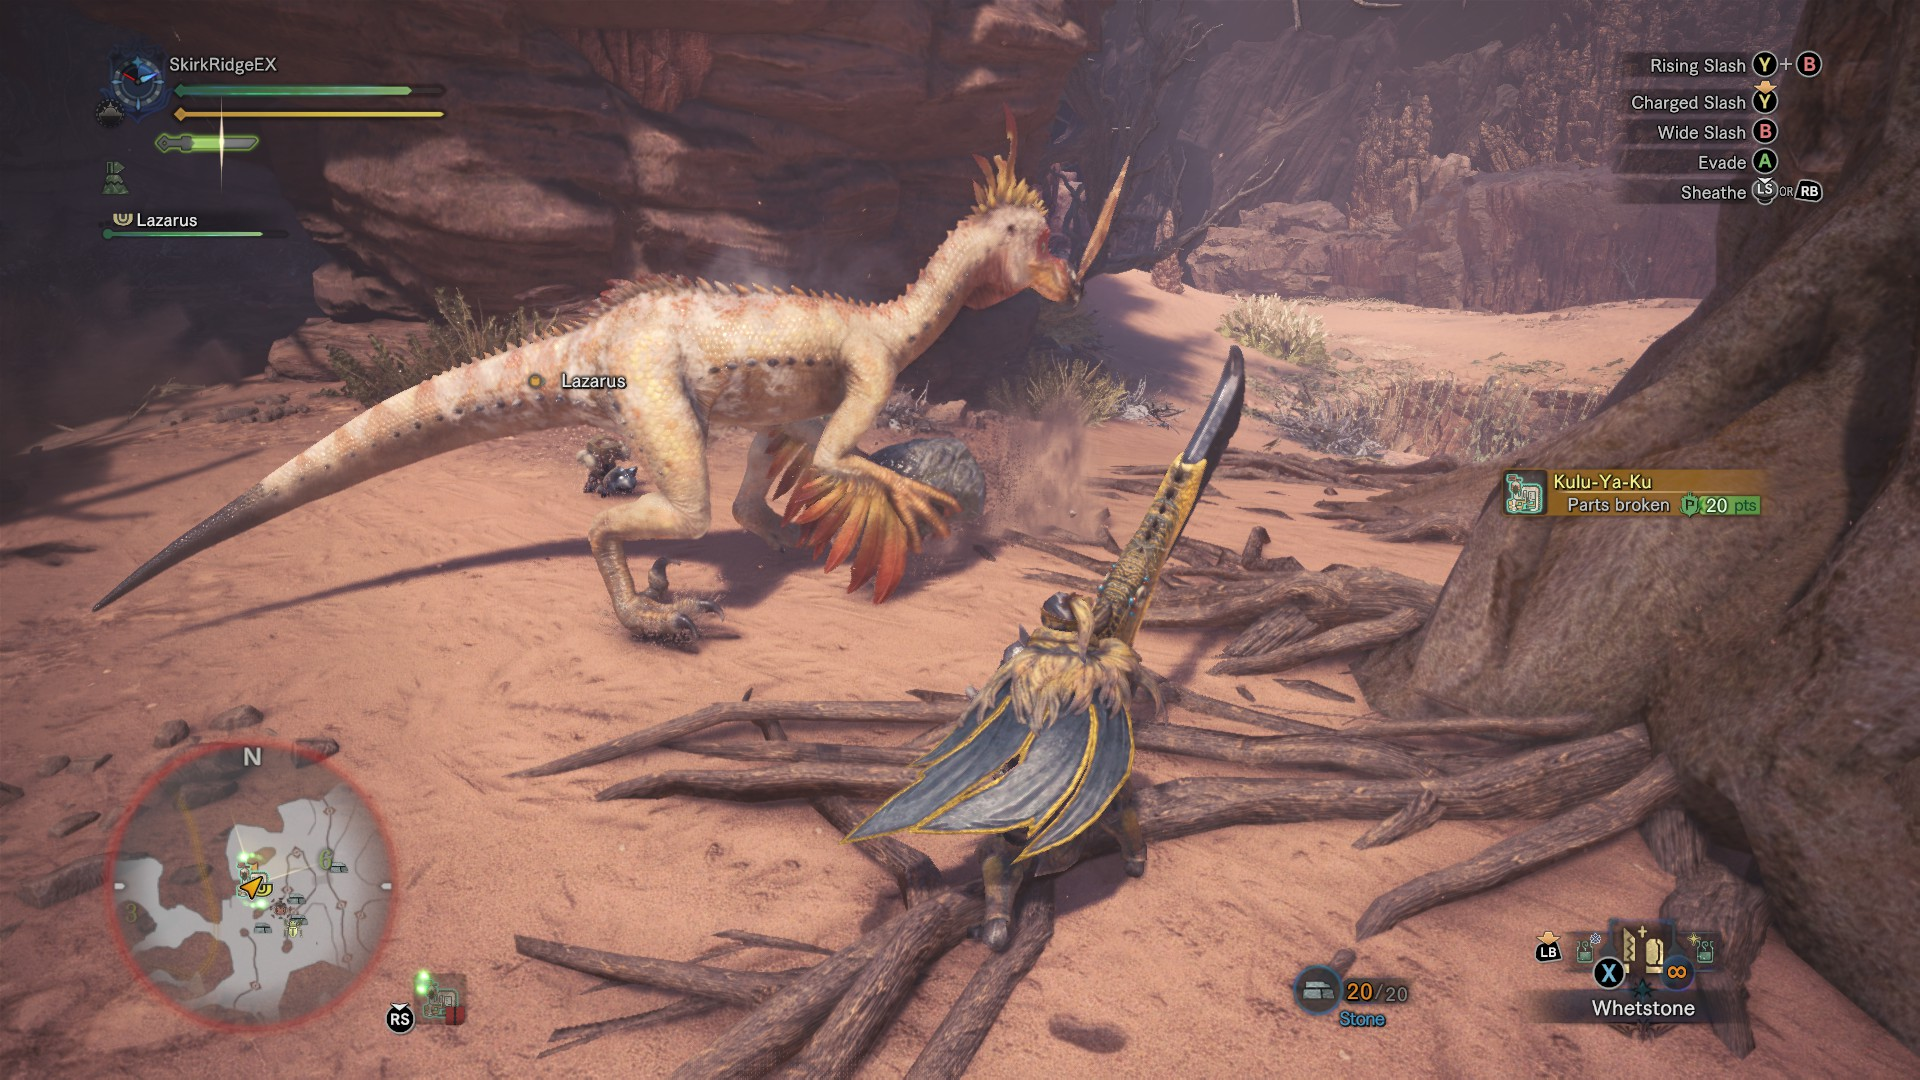 Player fighting Kulu-ya-ku which is now picking up a rock.